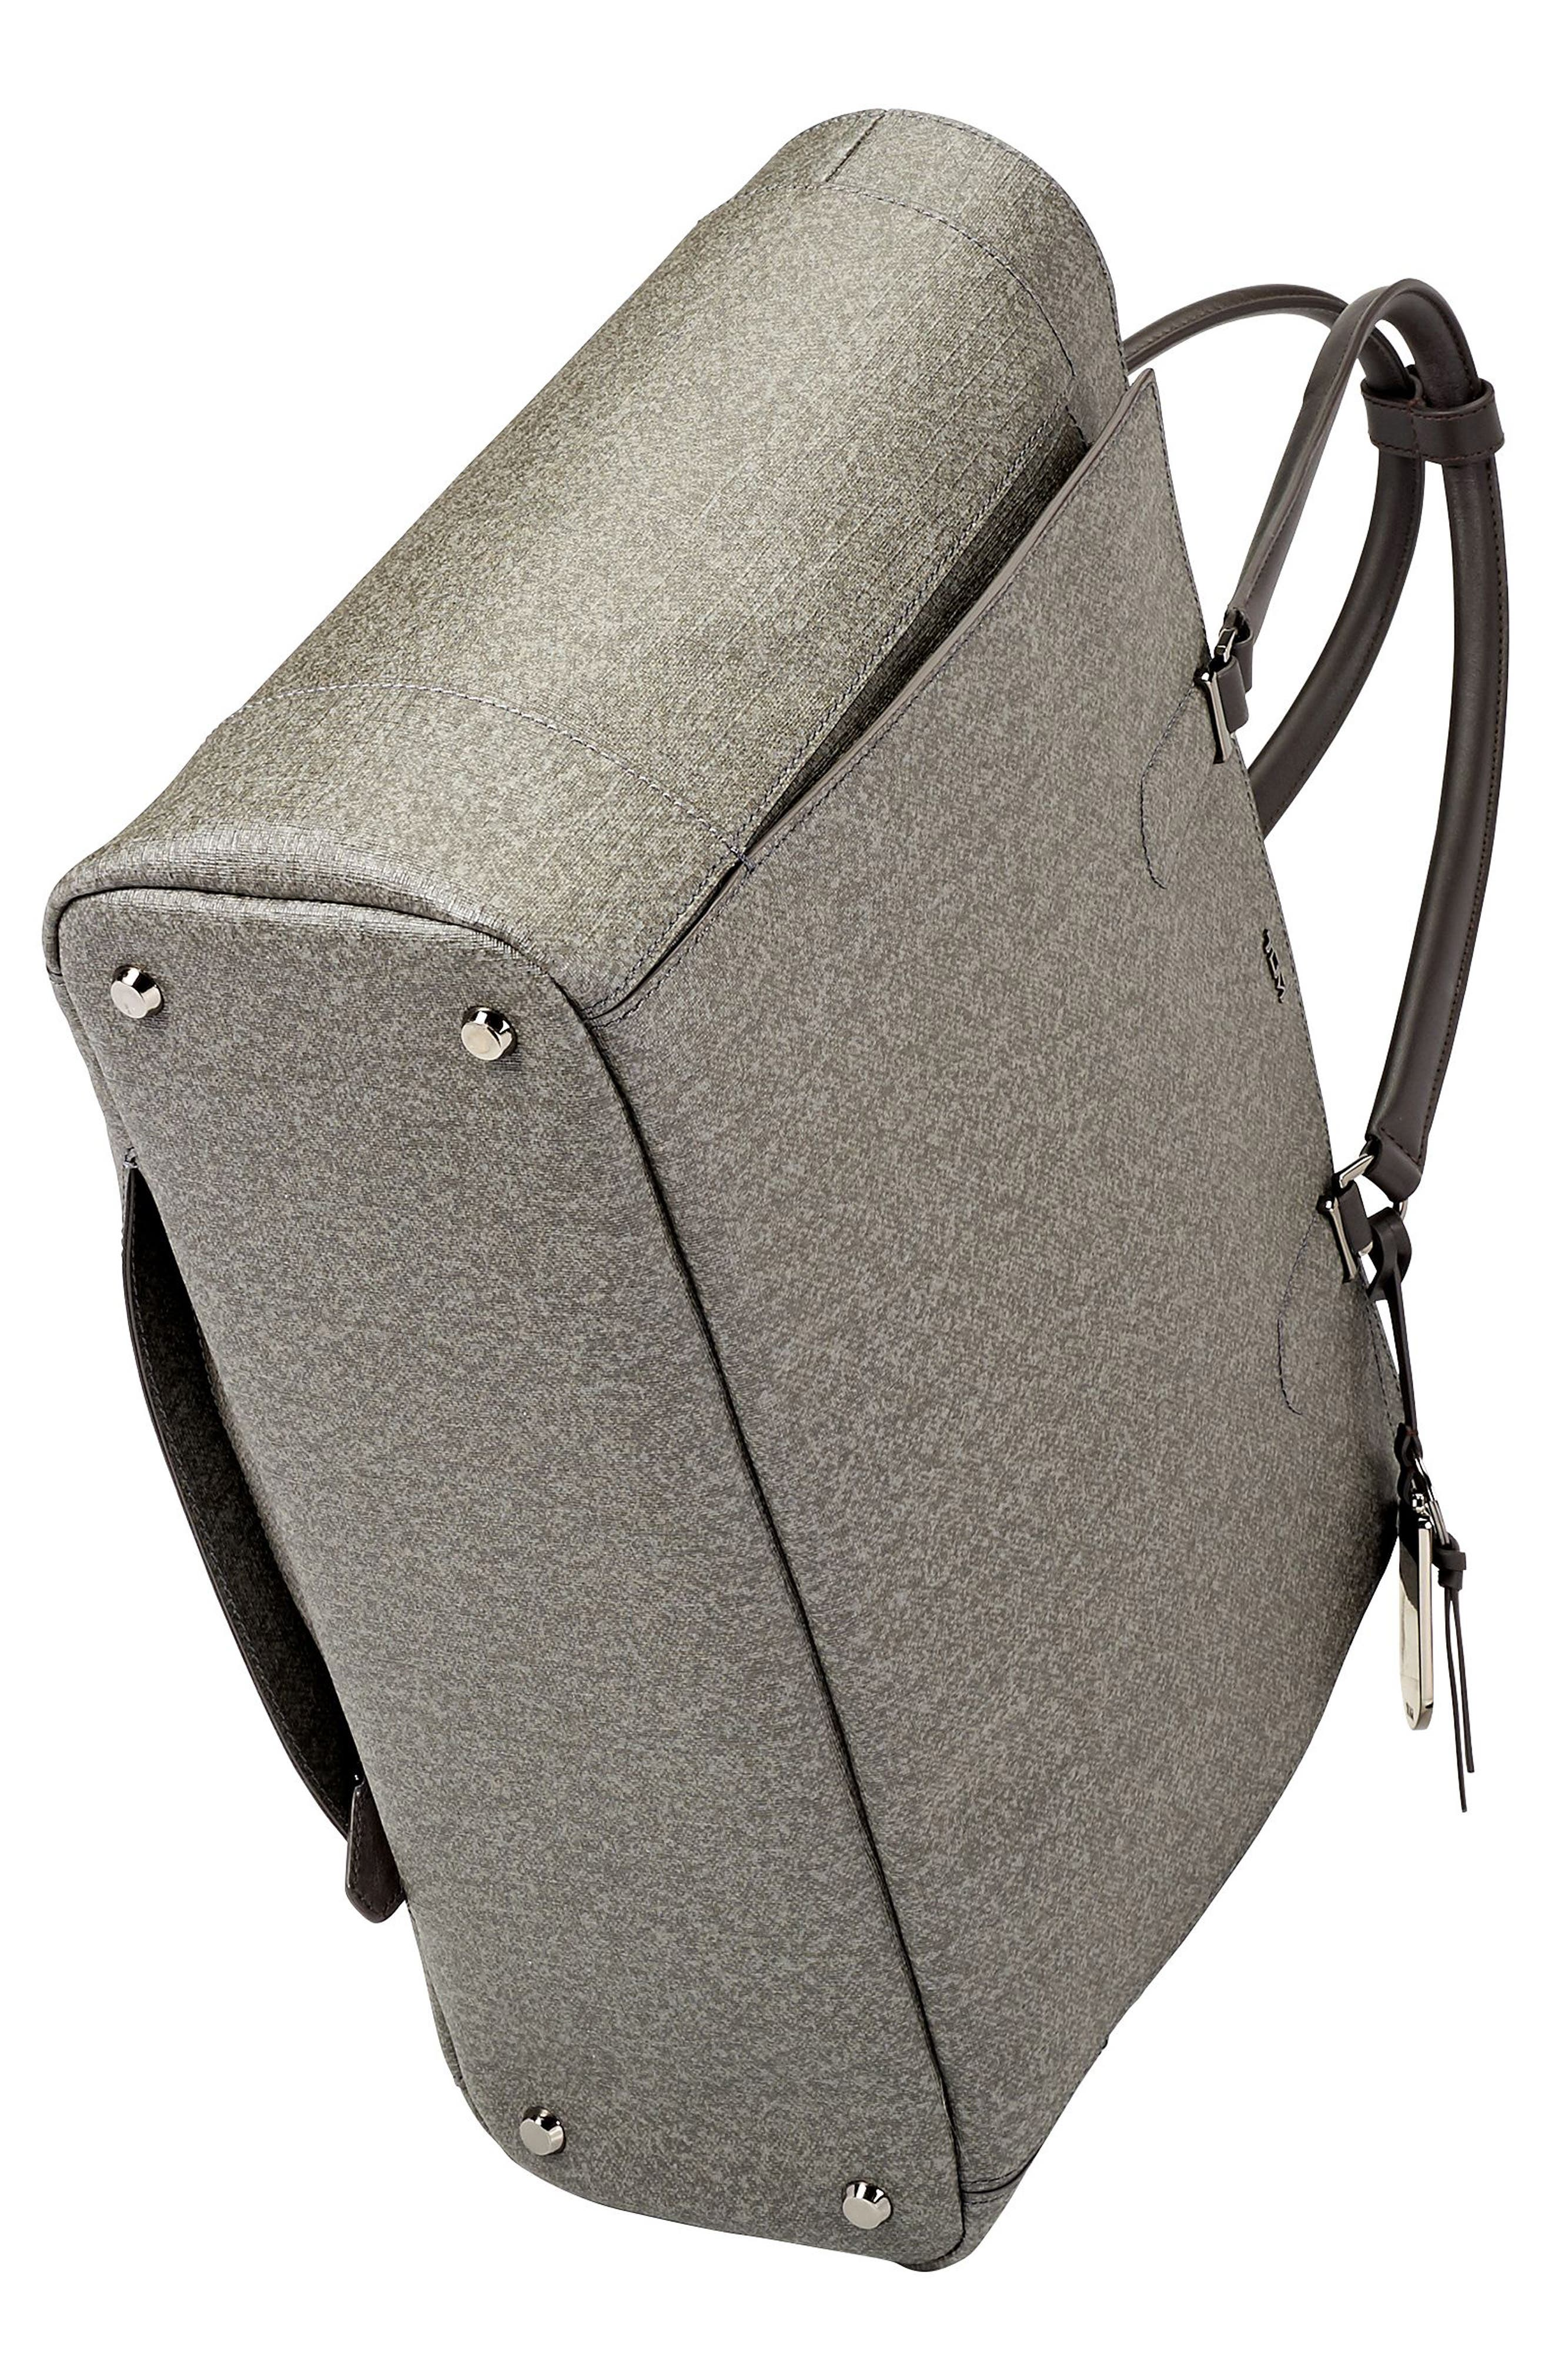 Stanton Business Tote,                             Alternate thumbnail 4, color,                             020